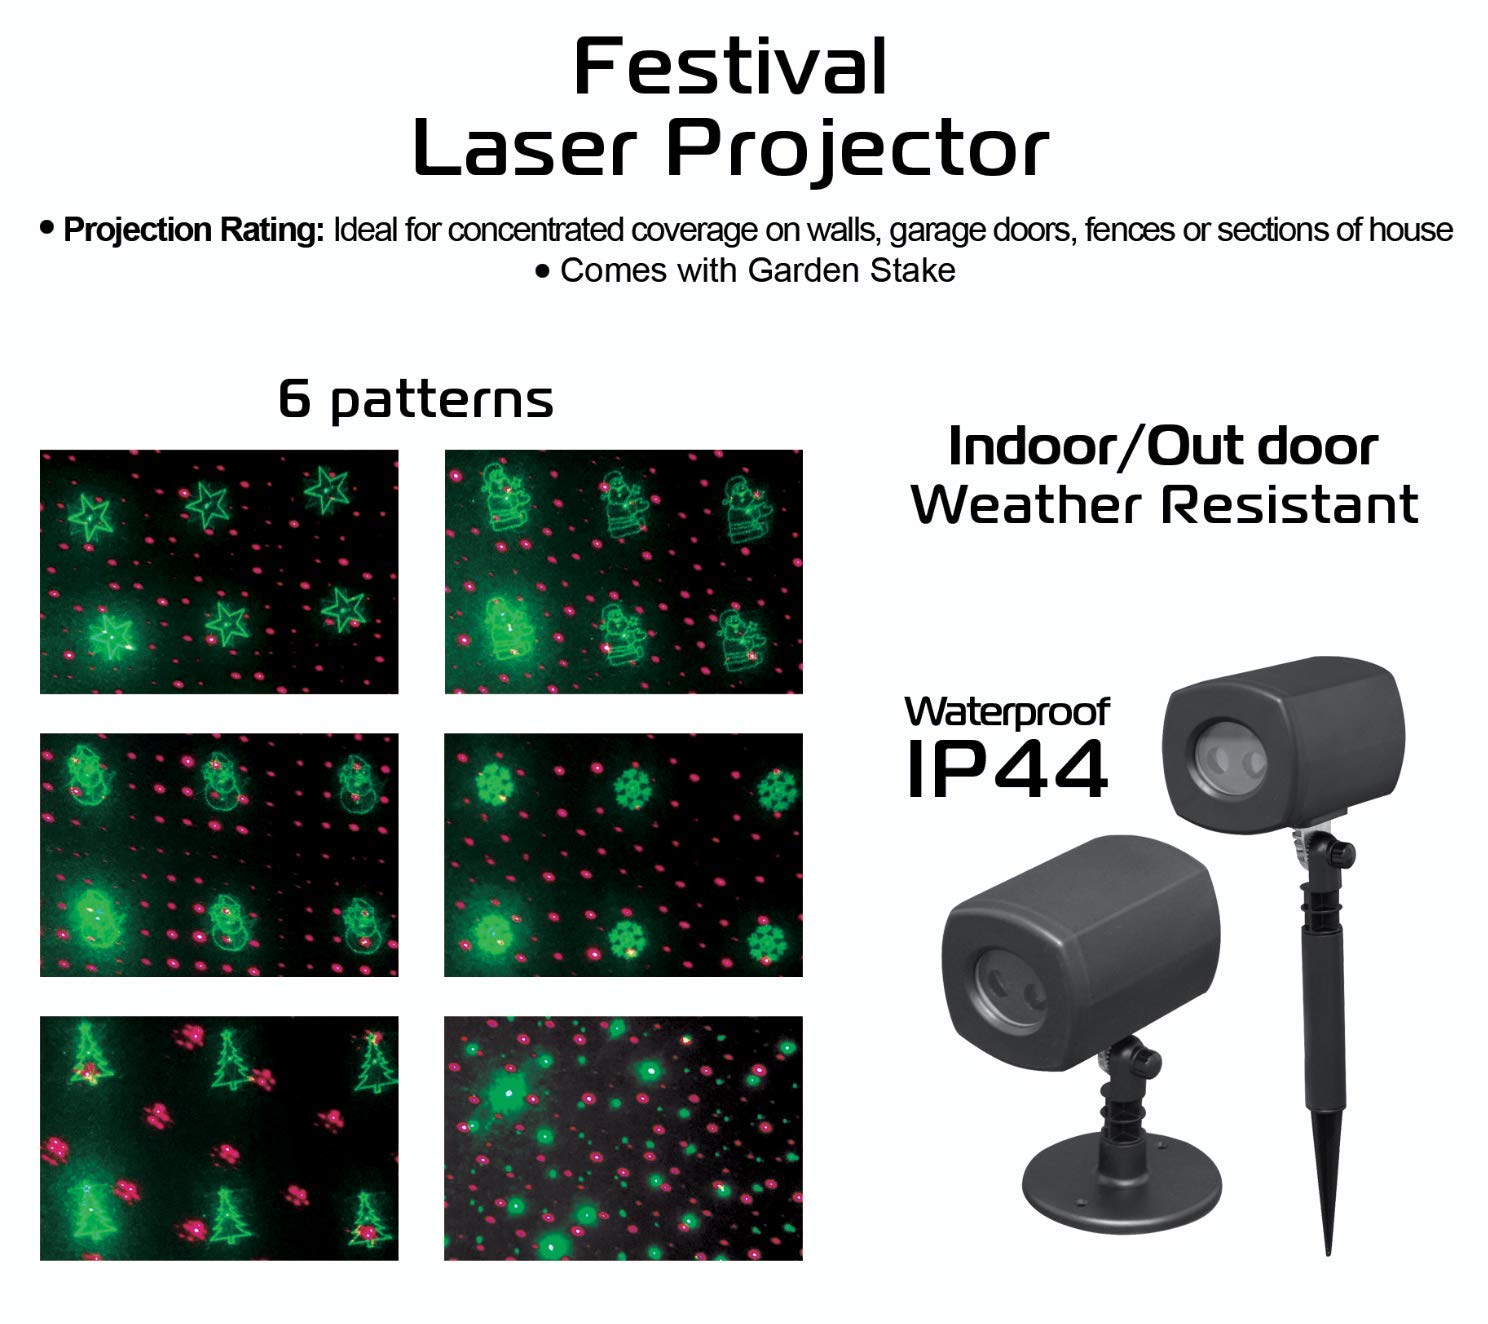 Great for The Holidays Indoor//Outdoor 6 Interchangeable Slides Festive /& Fun for Christmas Waterproof 07556 6 Holiday Patterns in One Projector 4Home Green and Red Laser LED Projector Lights